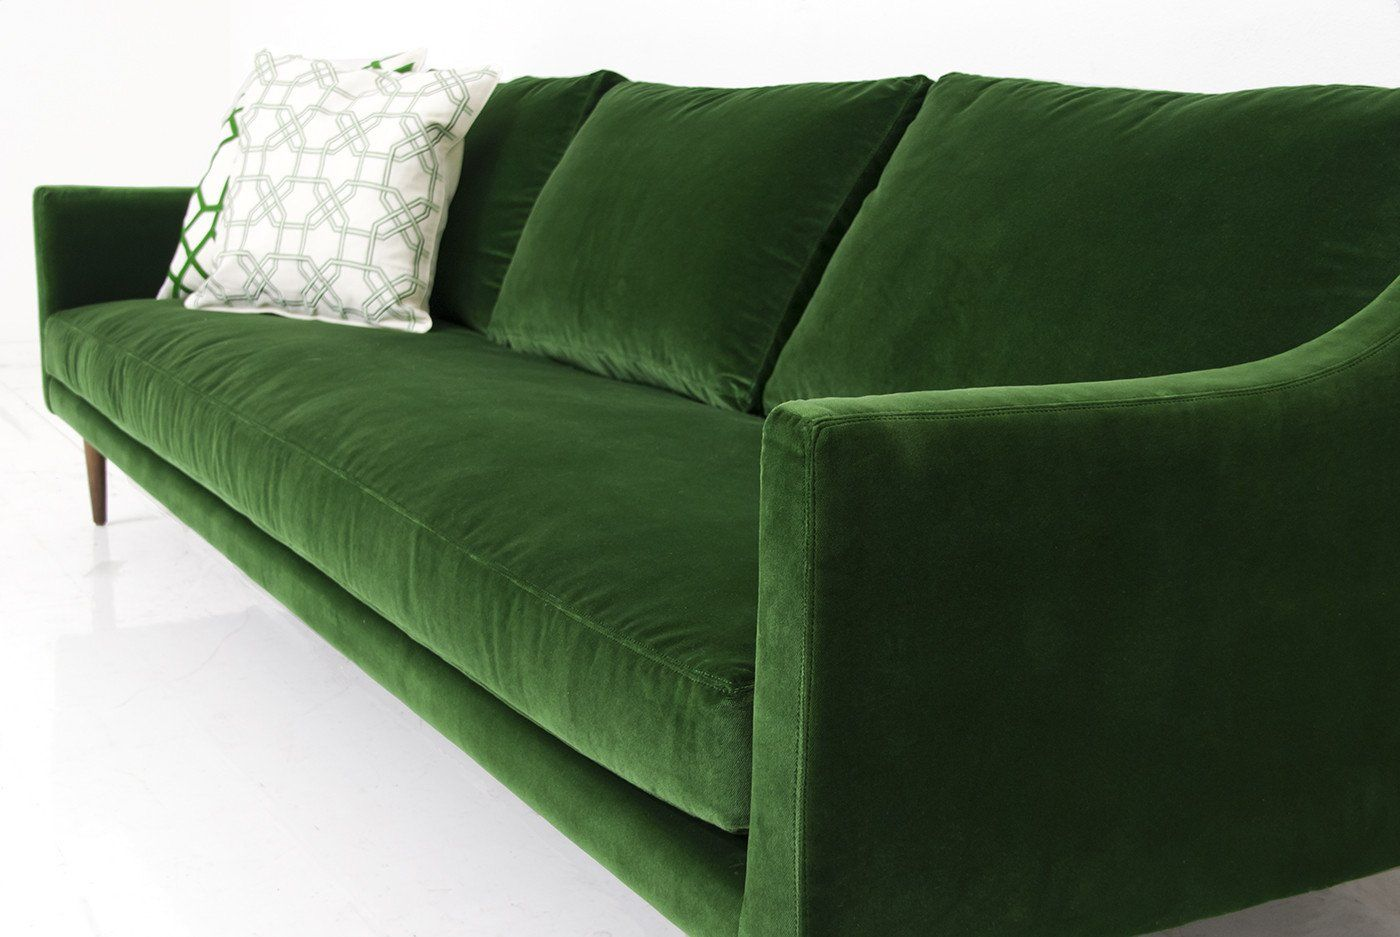 Naples Sofa In Emerald Green Velvet | Lovin Emerald Velvet